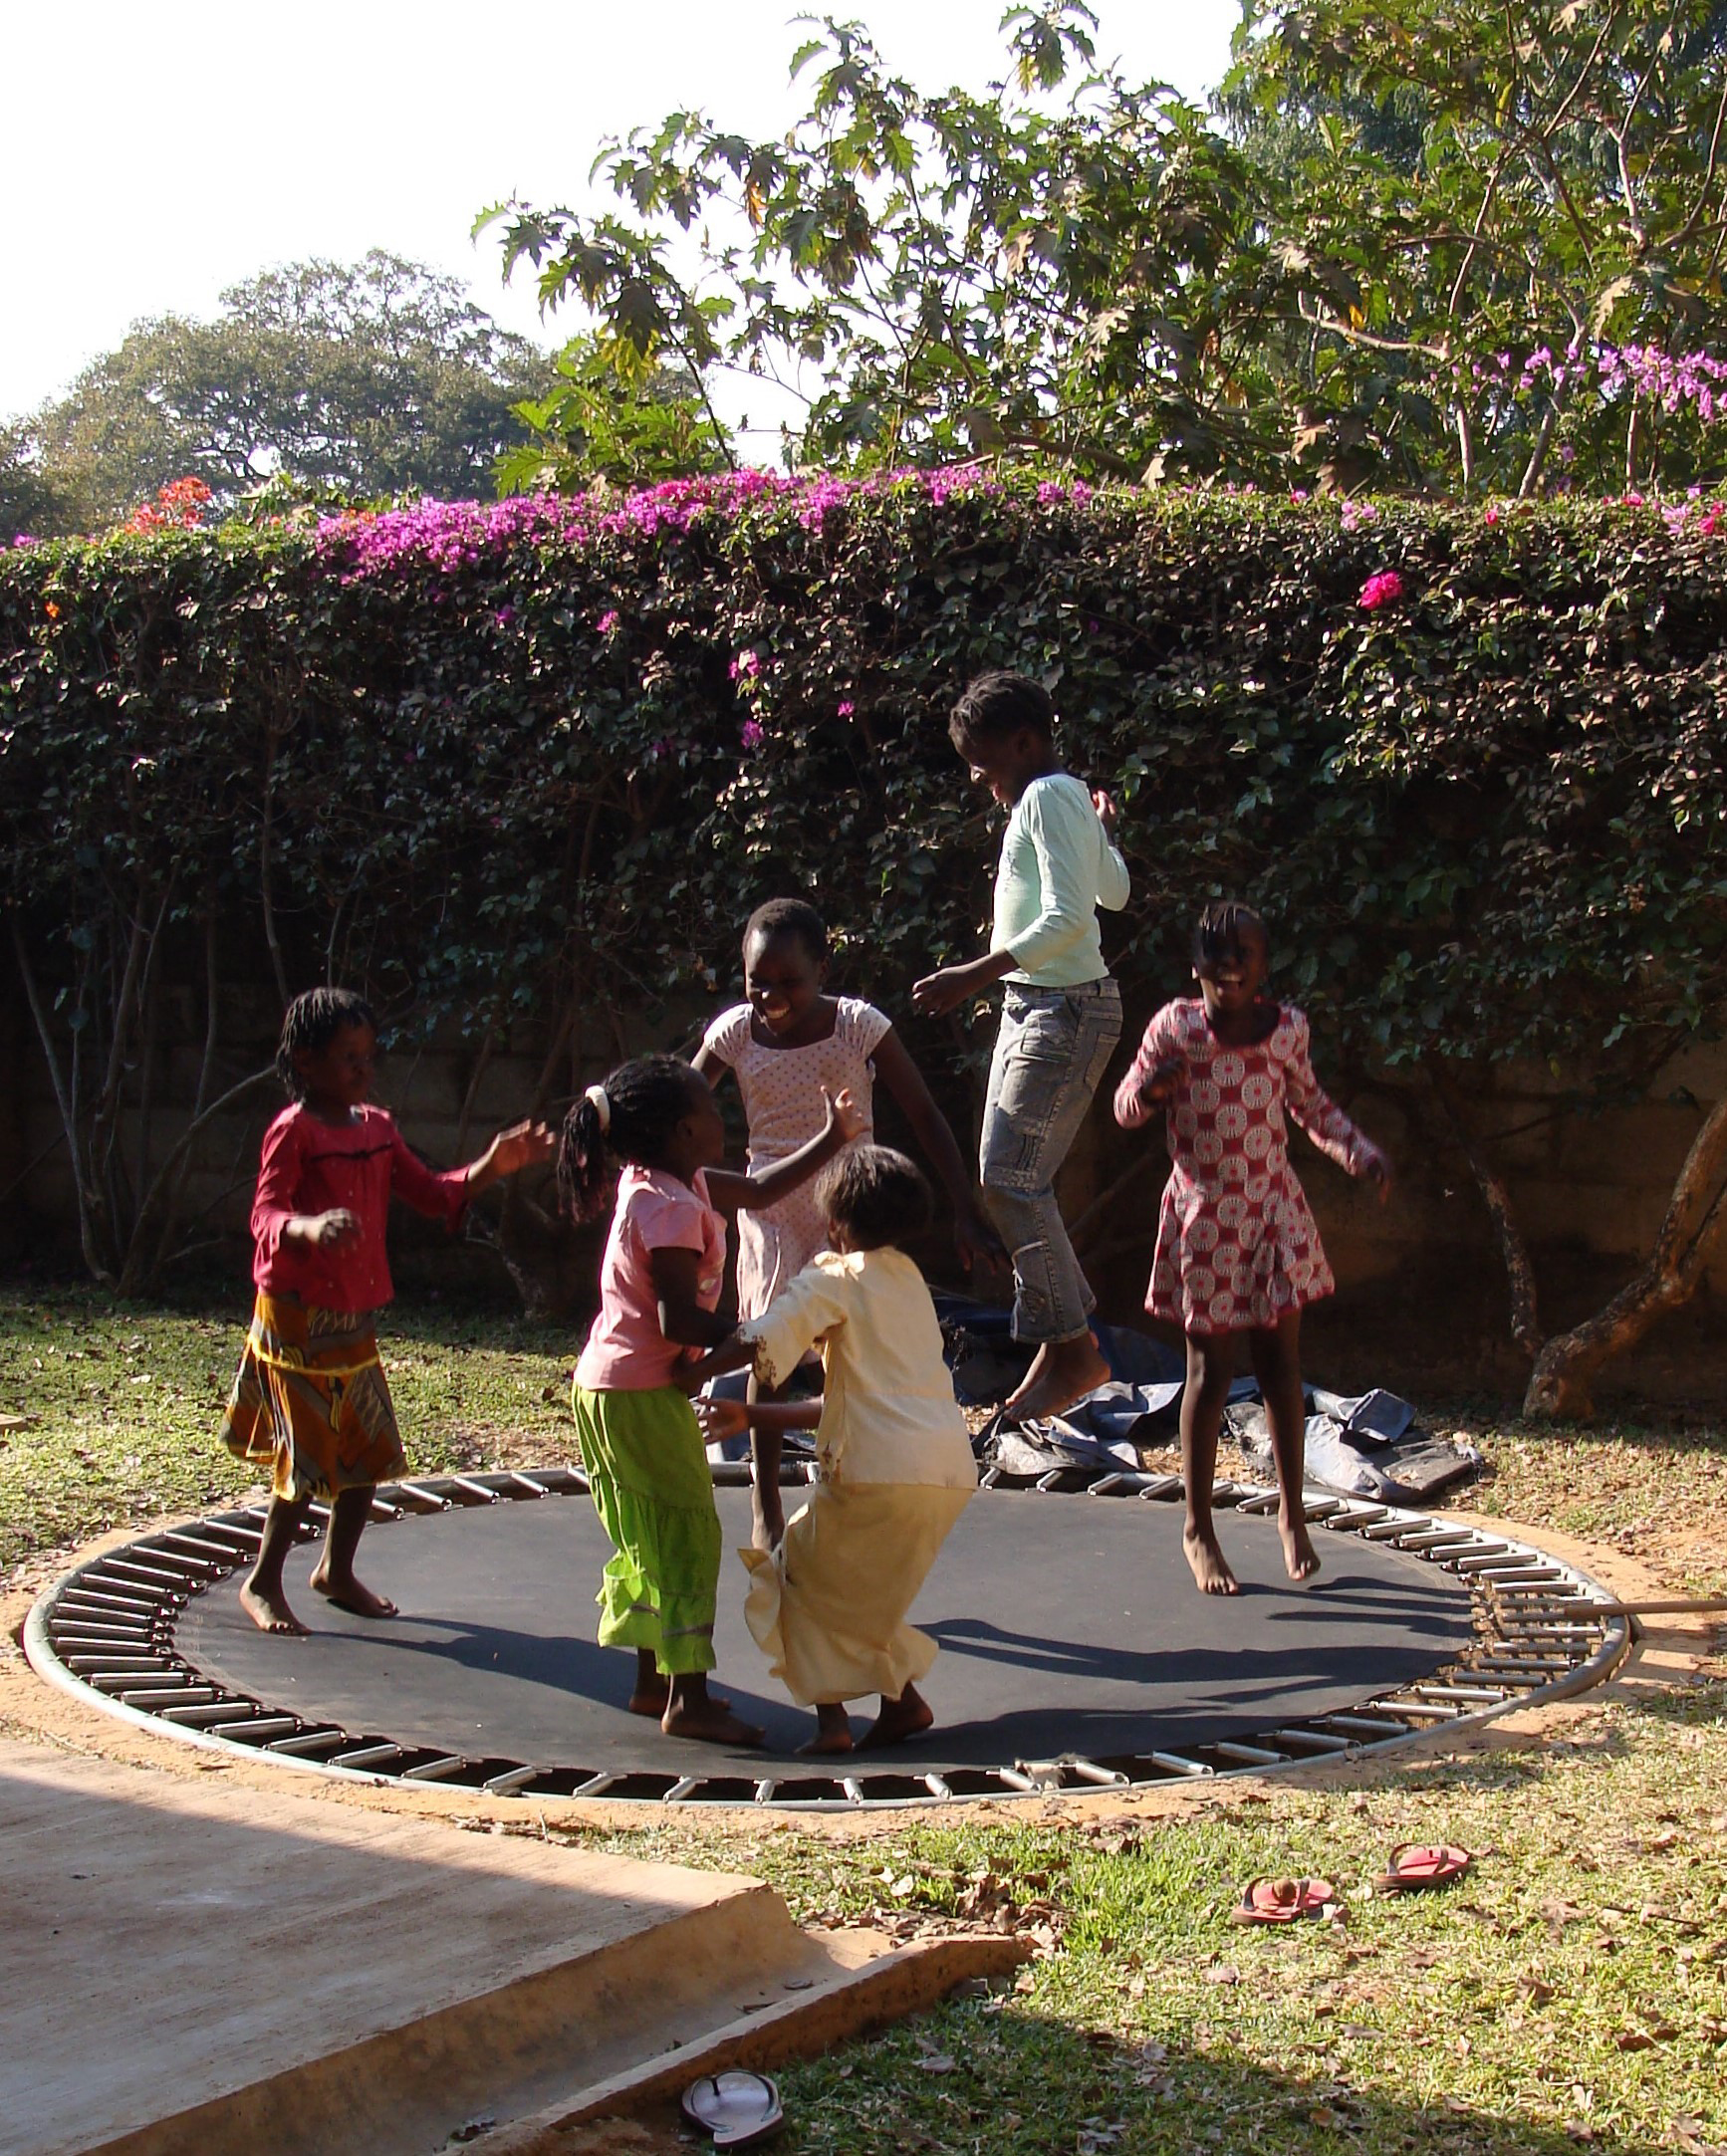 When we first moved to Zambia, our trampoline was a favorite gathering place for children living on campus.